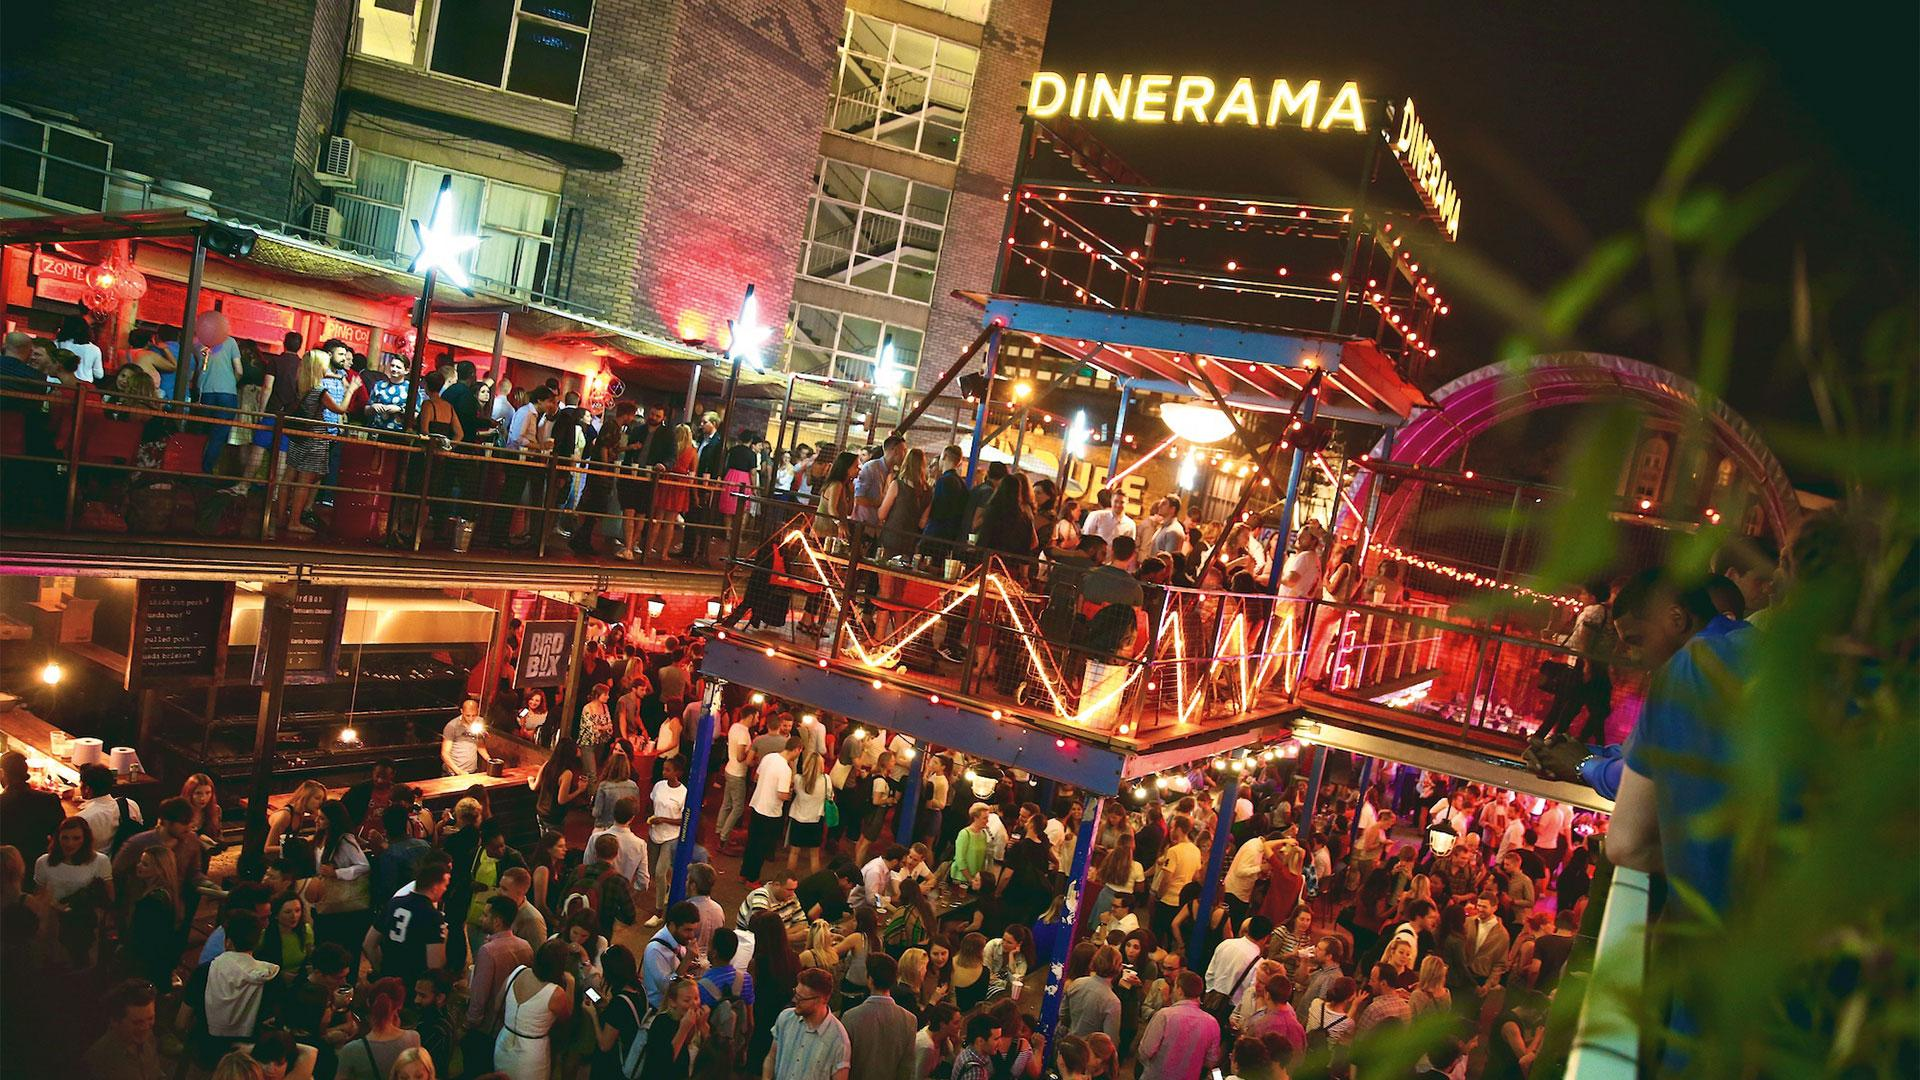 Street Feast's Dinerama on a busy Friday night